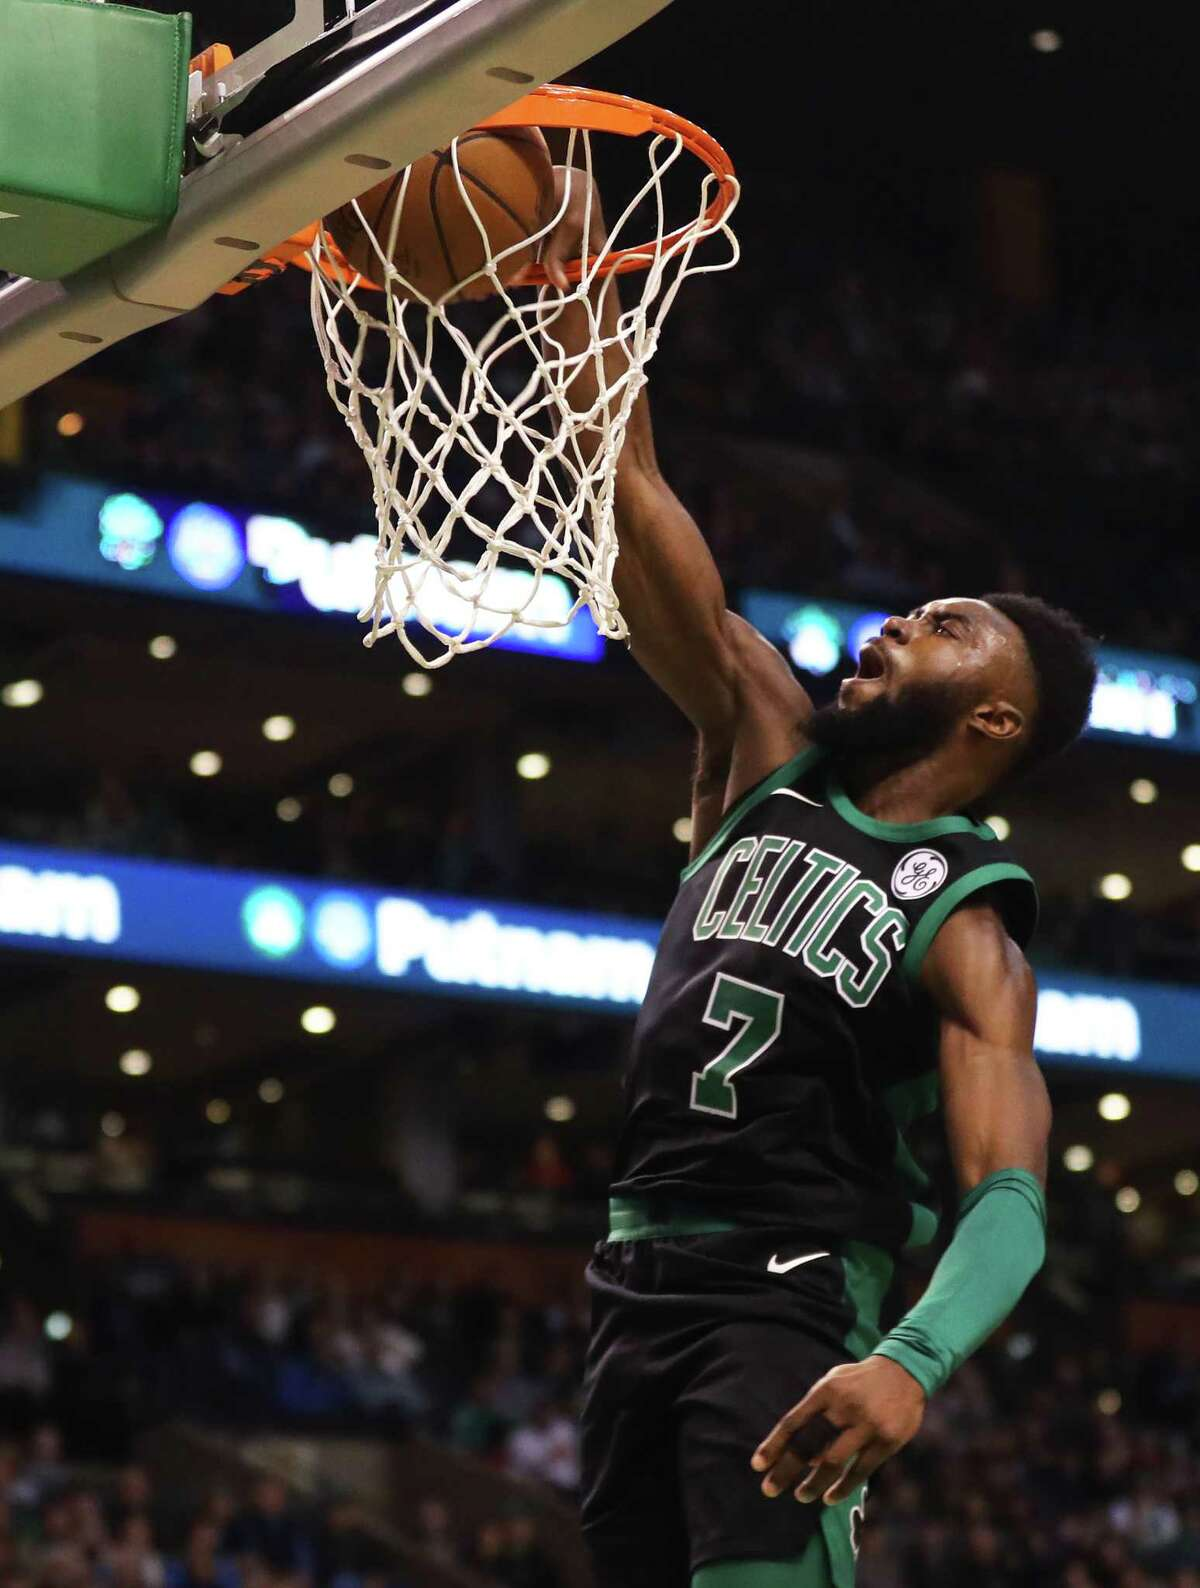 BOSTON, MA - DECEMBER 2: Jaylen Brown #7 of the Boston Celtics dunks during the first half against the Phoenix Suns at TD Garden on December 2, 2017 in Boston, Massachusetts. (Photo by Maddie Meyer/Getty Images) ORG XMIT: 775026977